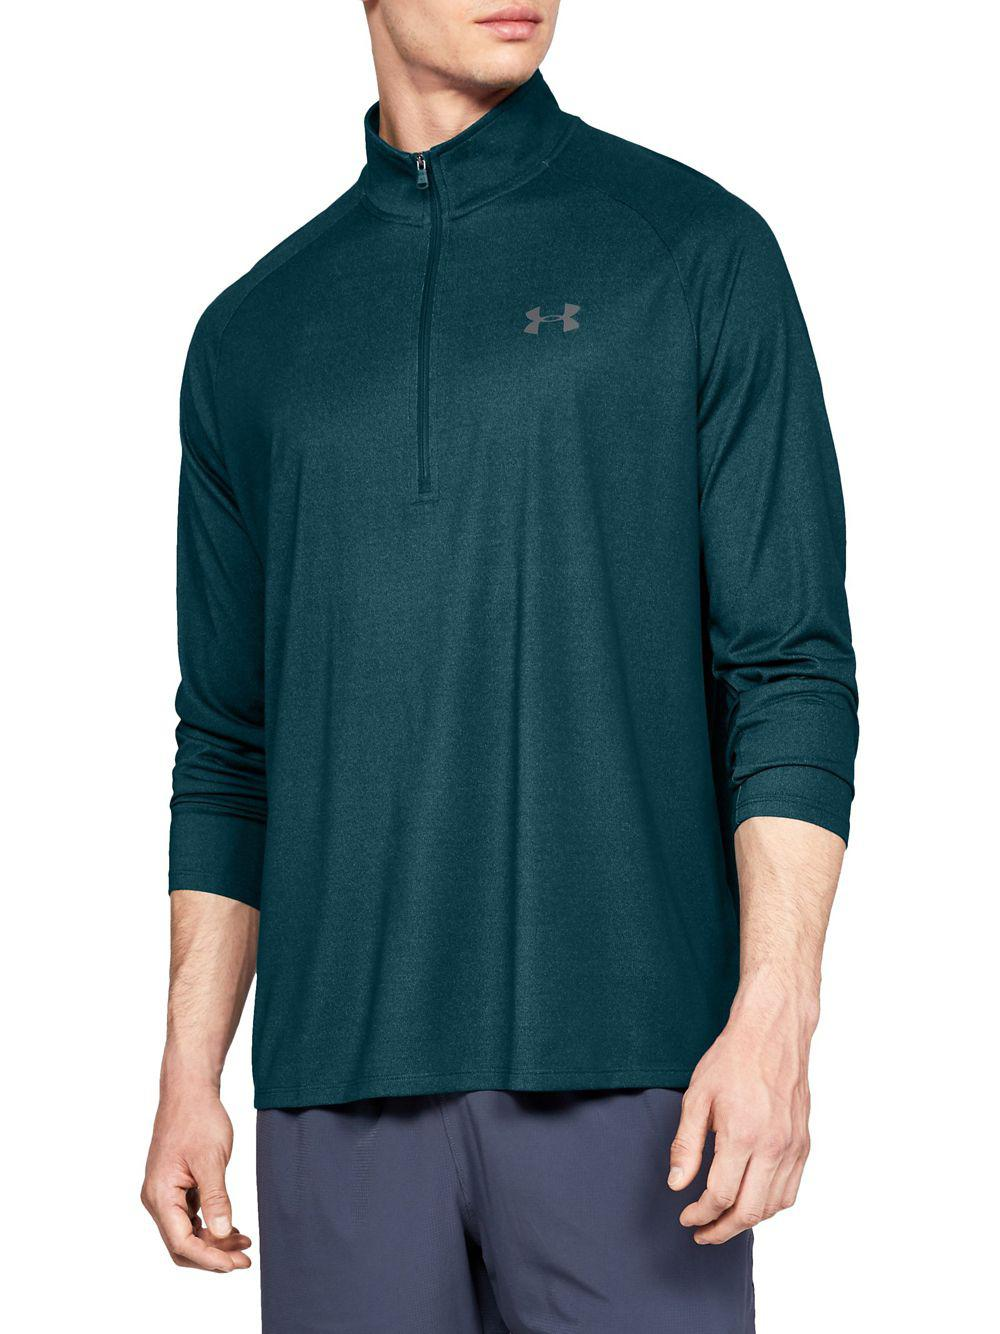 Under armour tech zip long sleeve sweatshirt in green for for Under armour men s ua tech quarter zip long sleeve shirt